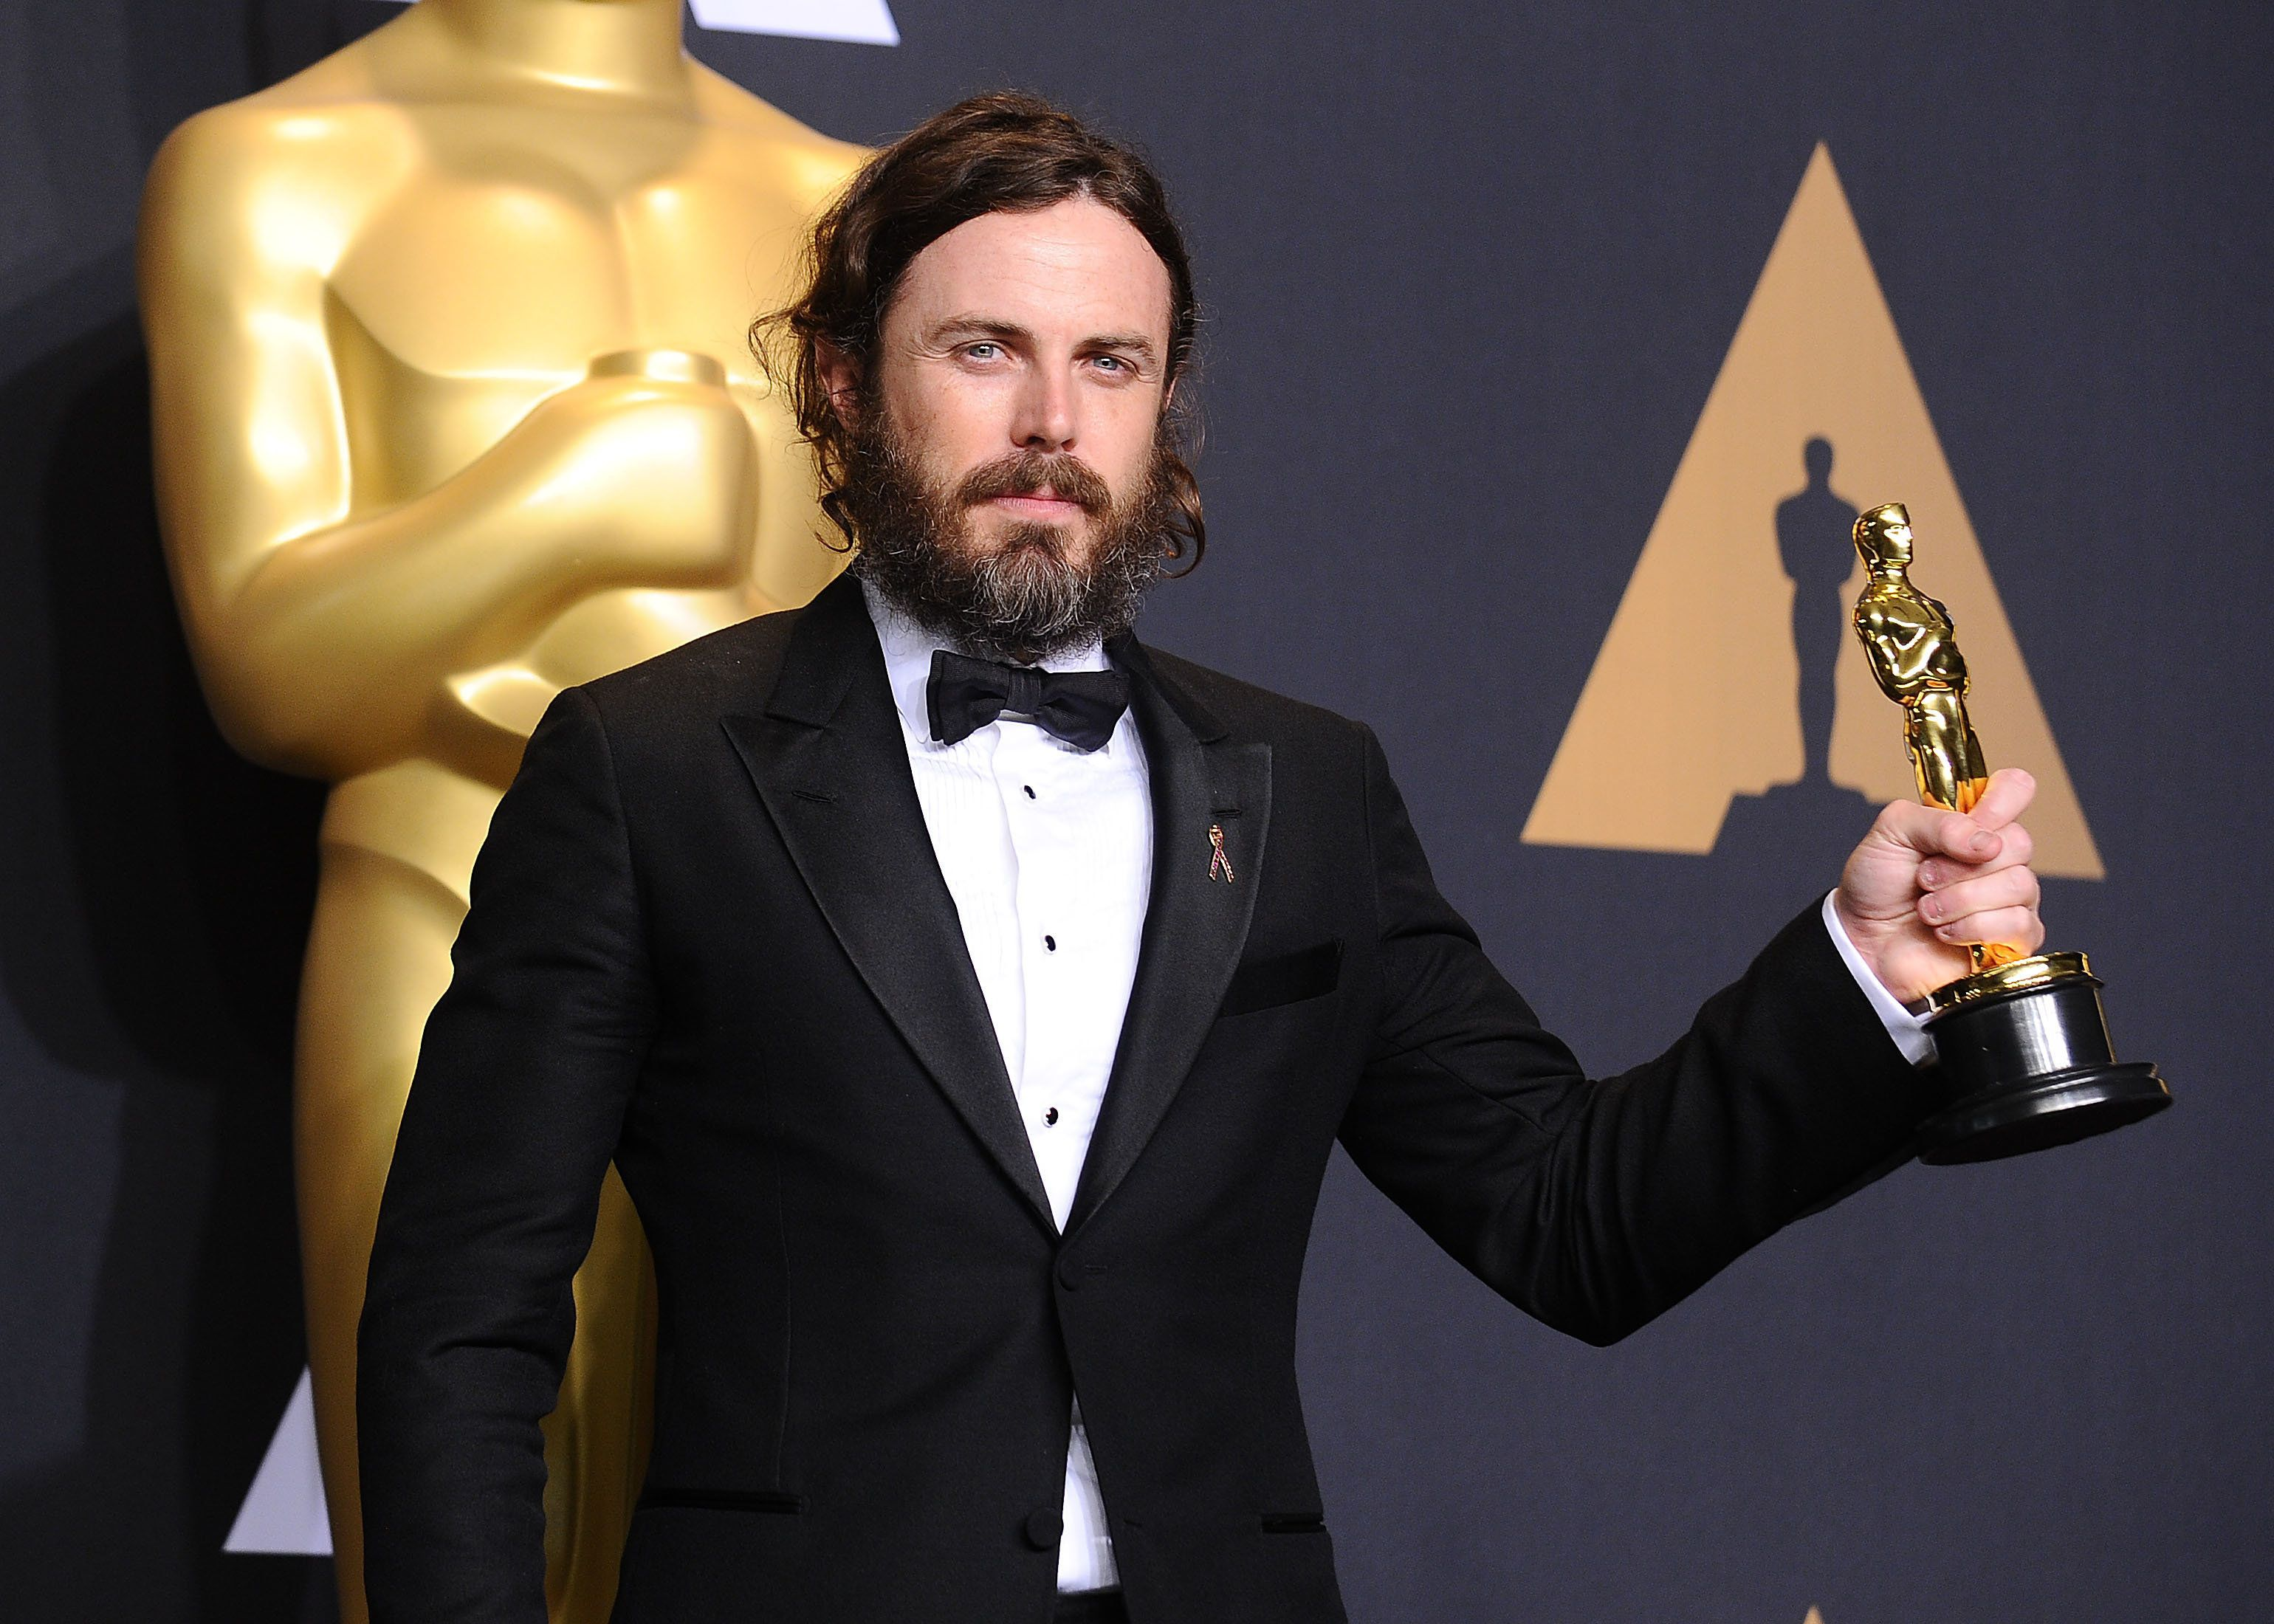 Casey Affleck apologizes for tolerating 'unprofessional' on-set behavior